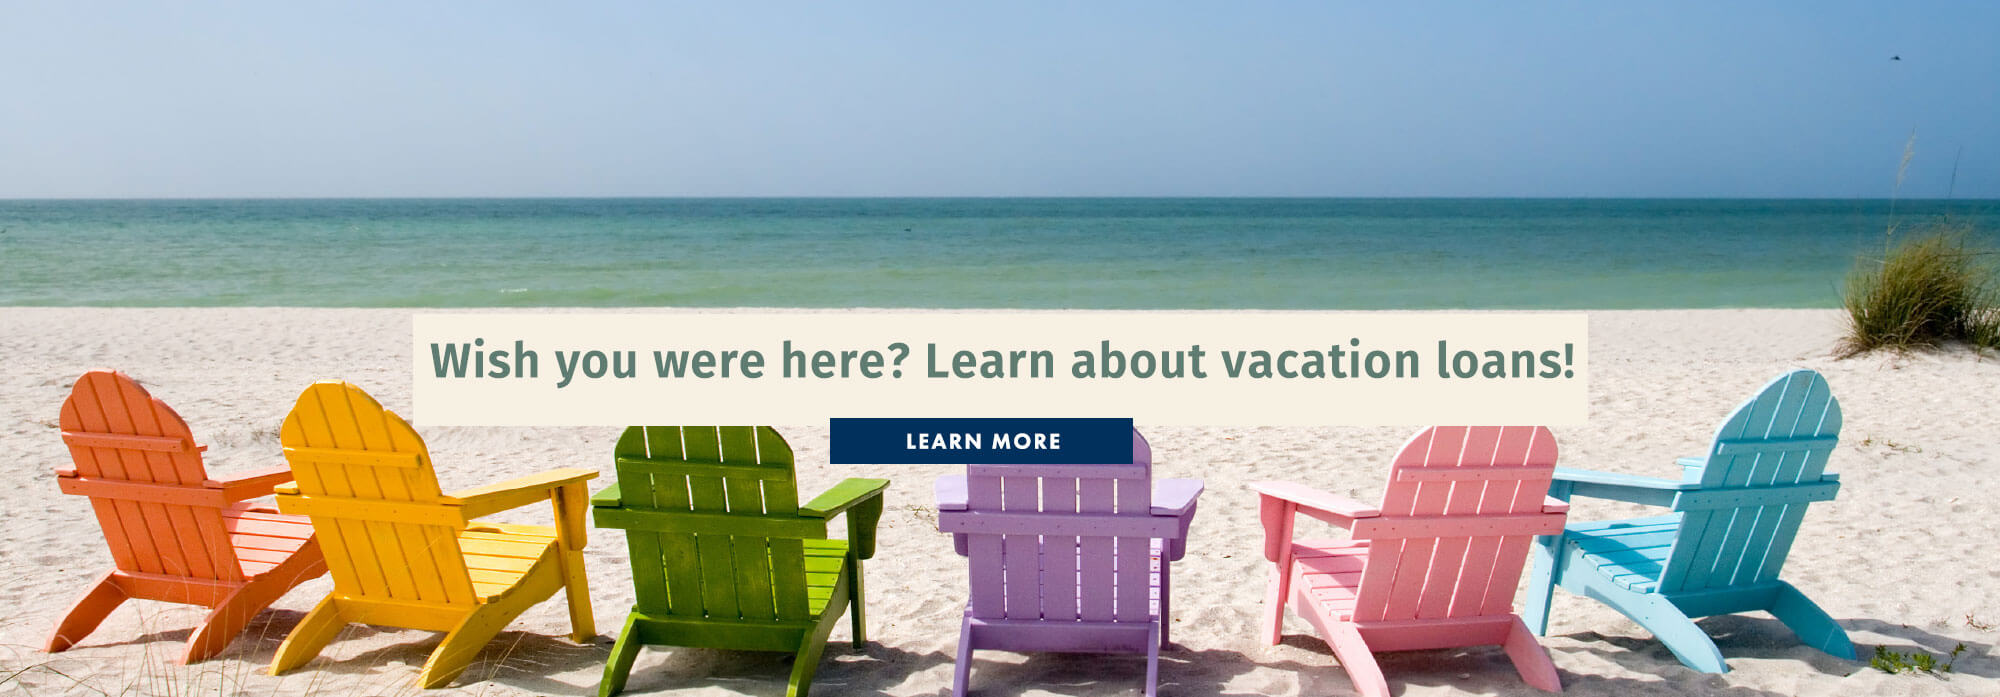 Wish you were here? Learn about vacation loans!